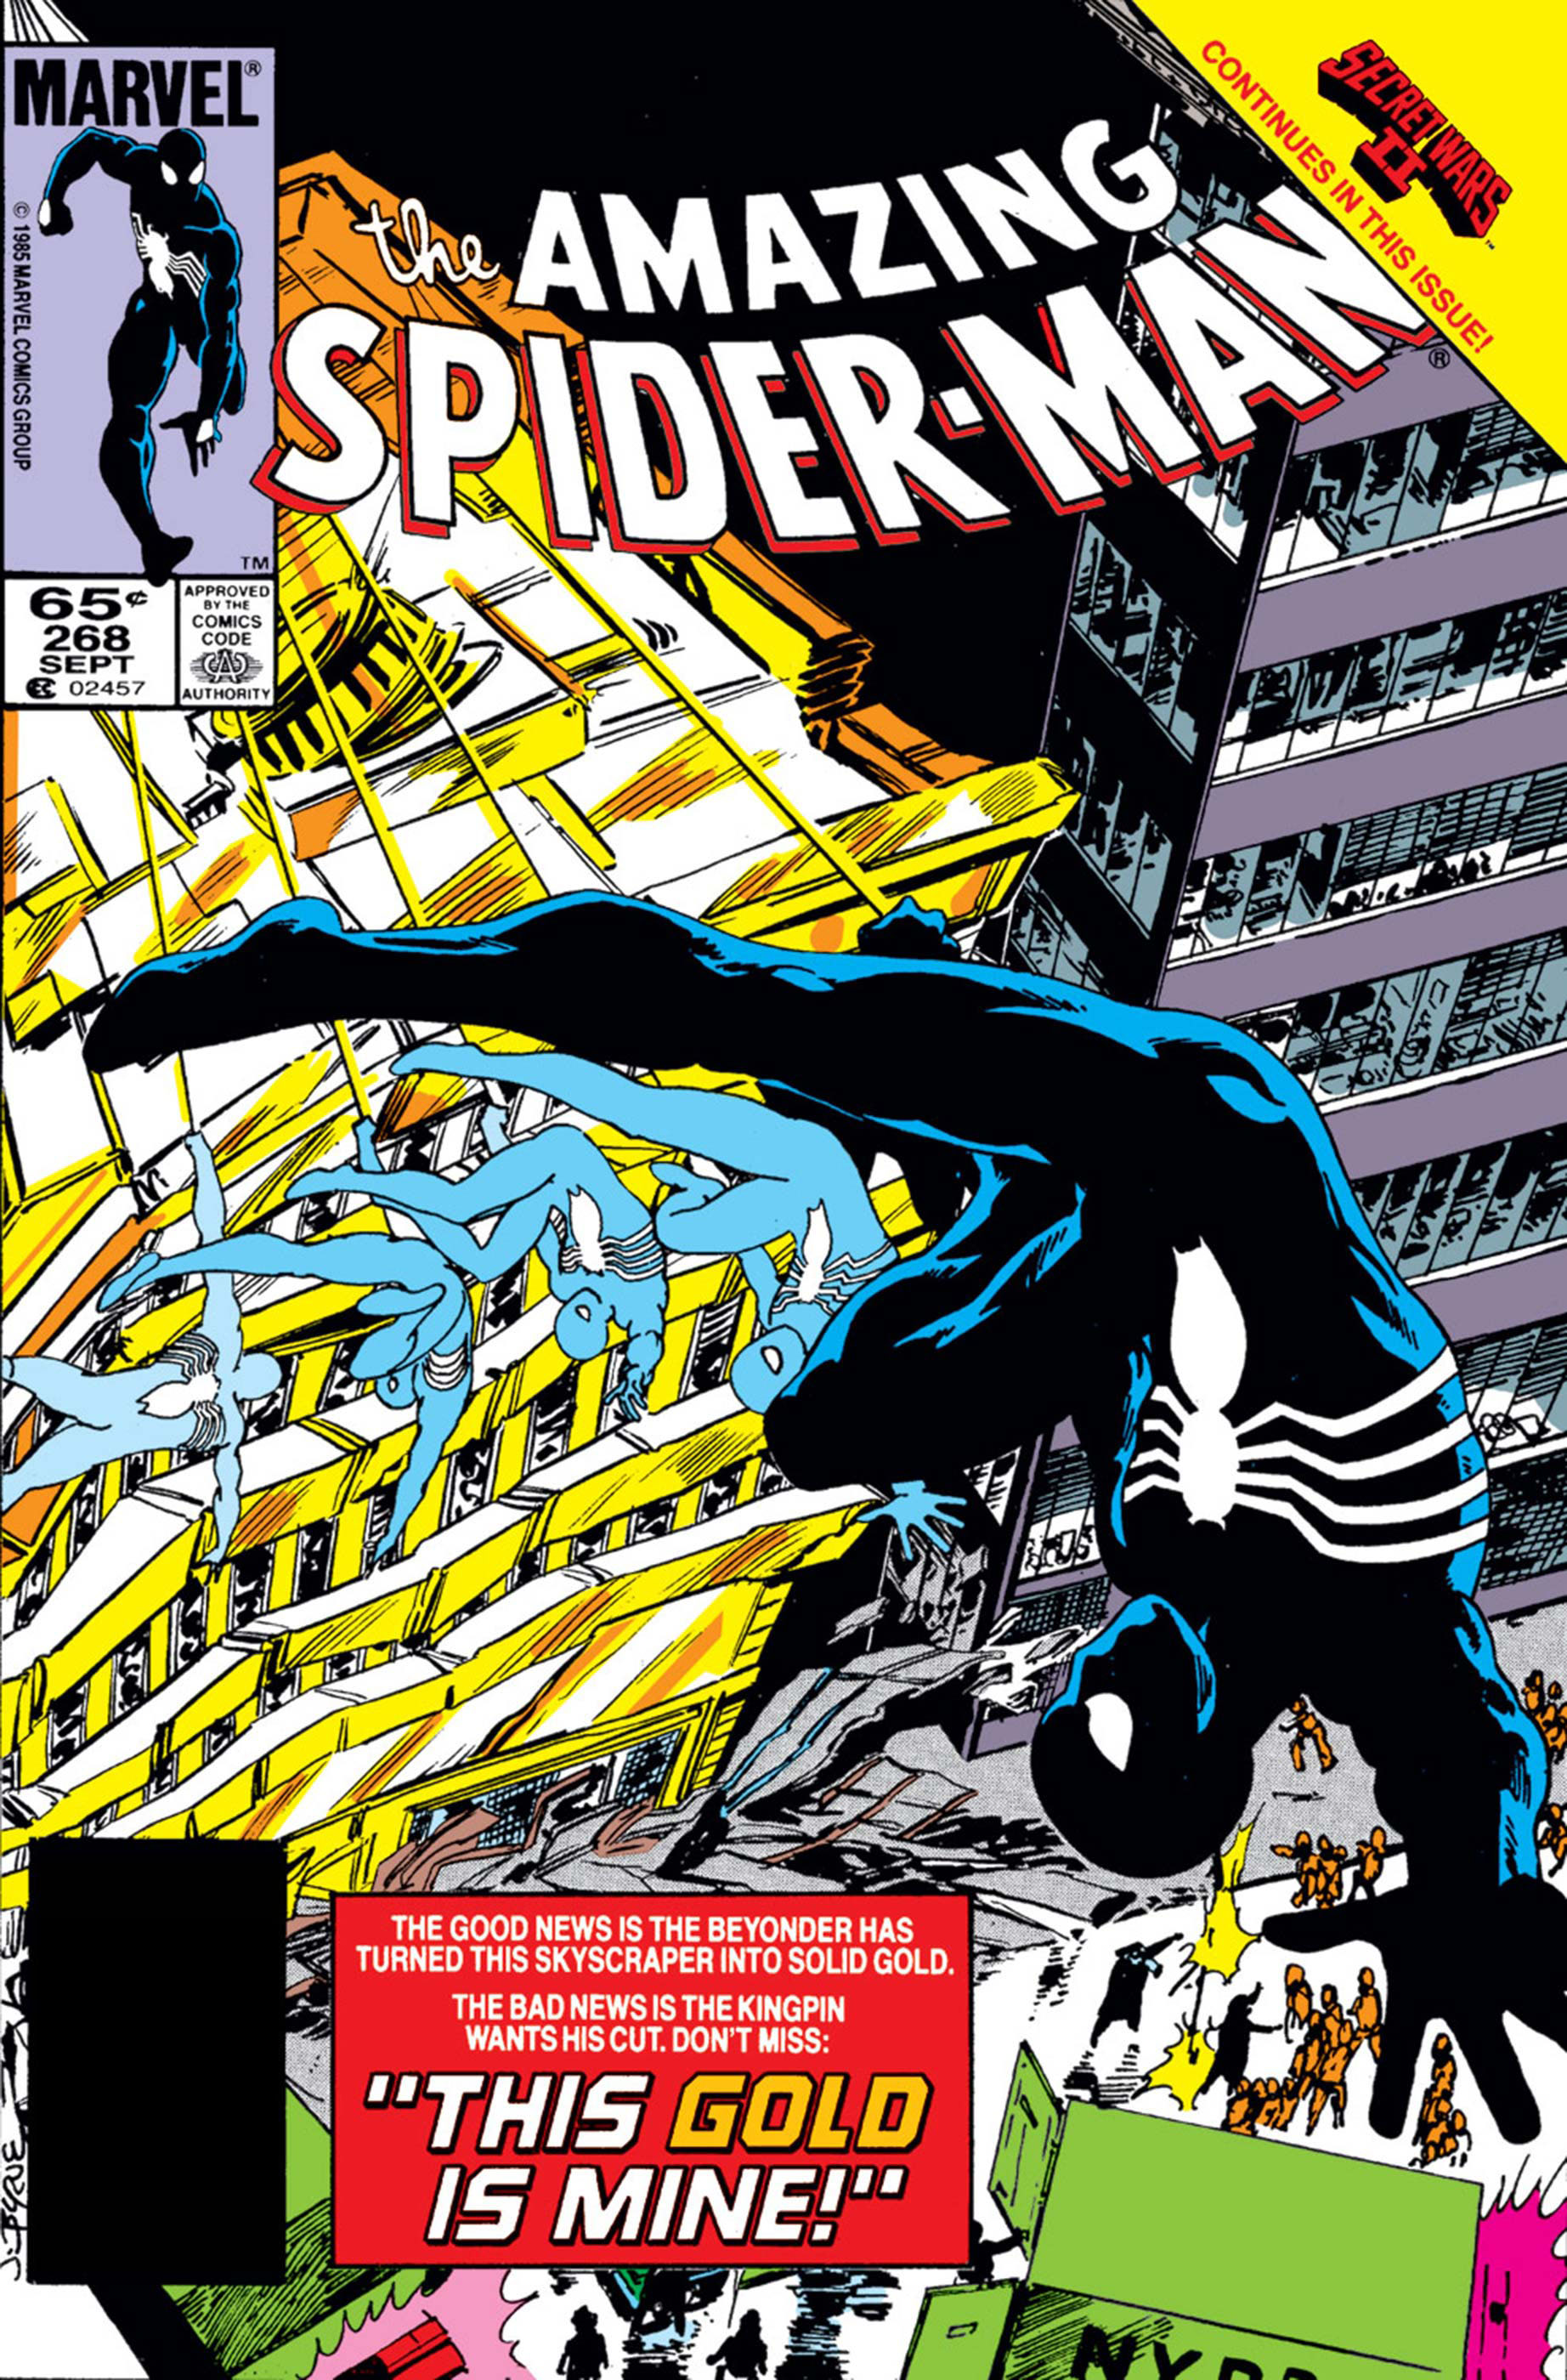 The Amazing Spider-Man (1963) #268